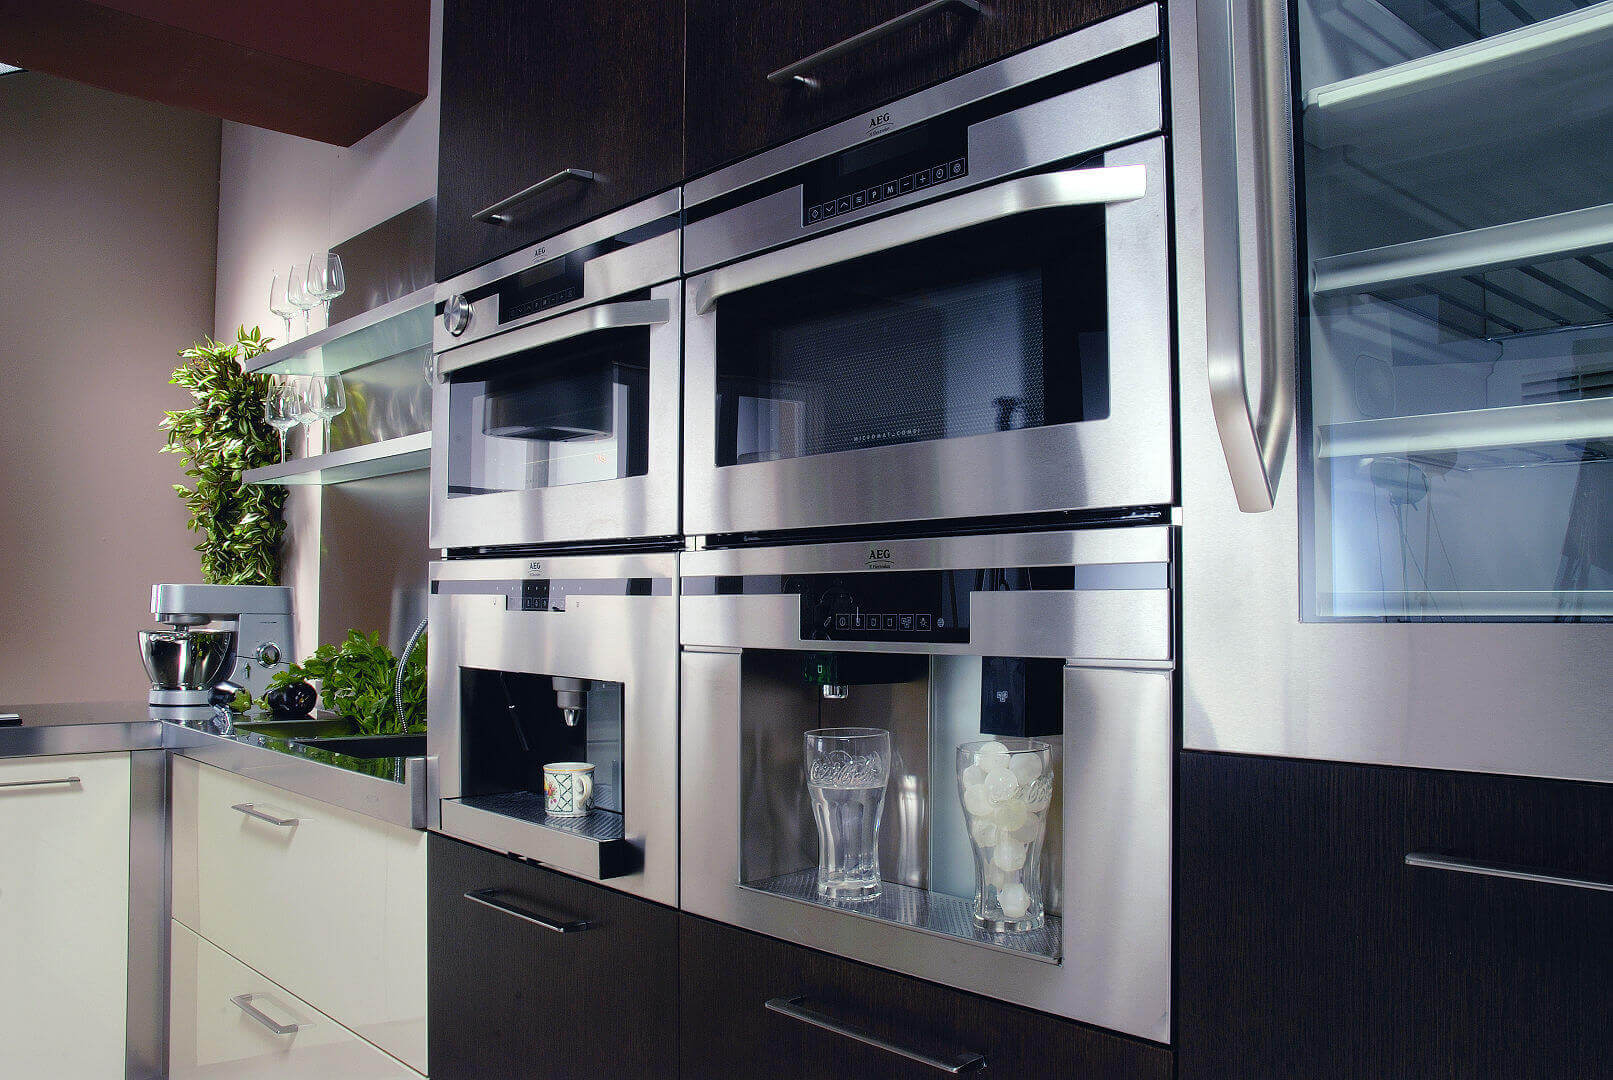 Arca Cucine Italy - Domestic stainless steel kitchens - 20 - Retunne - Ovens Composition